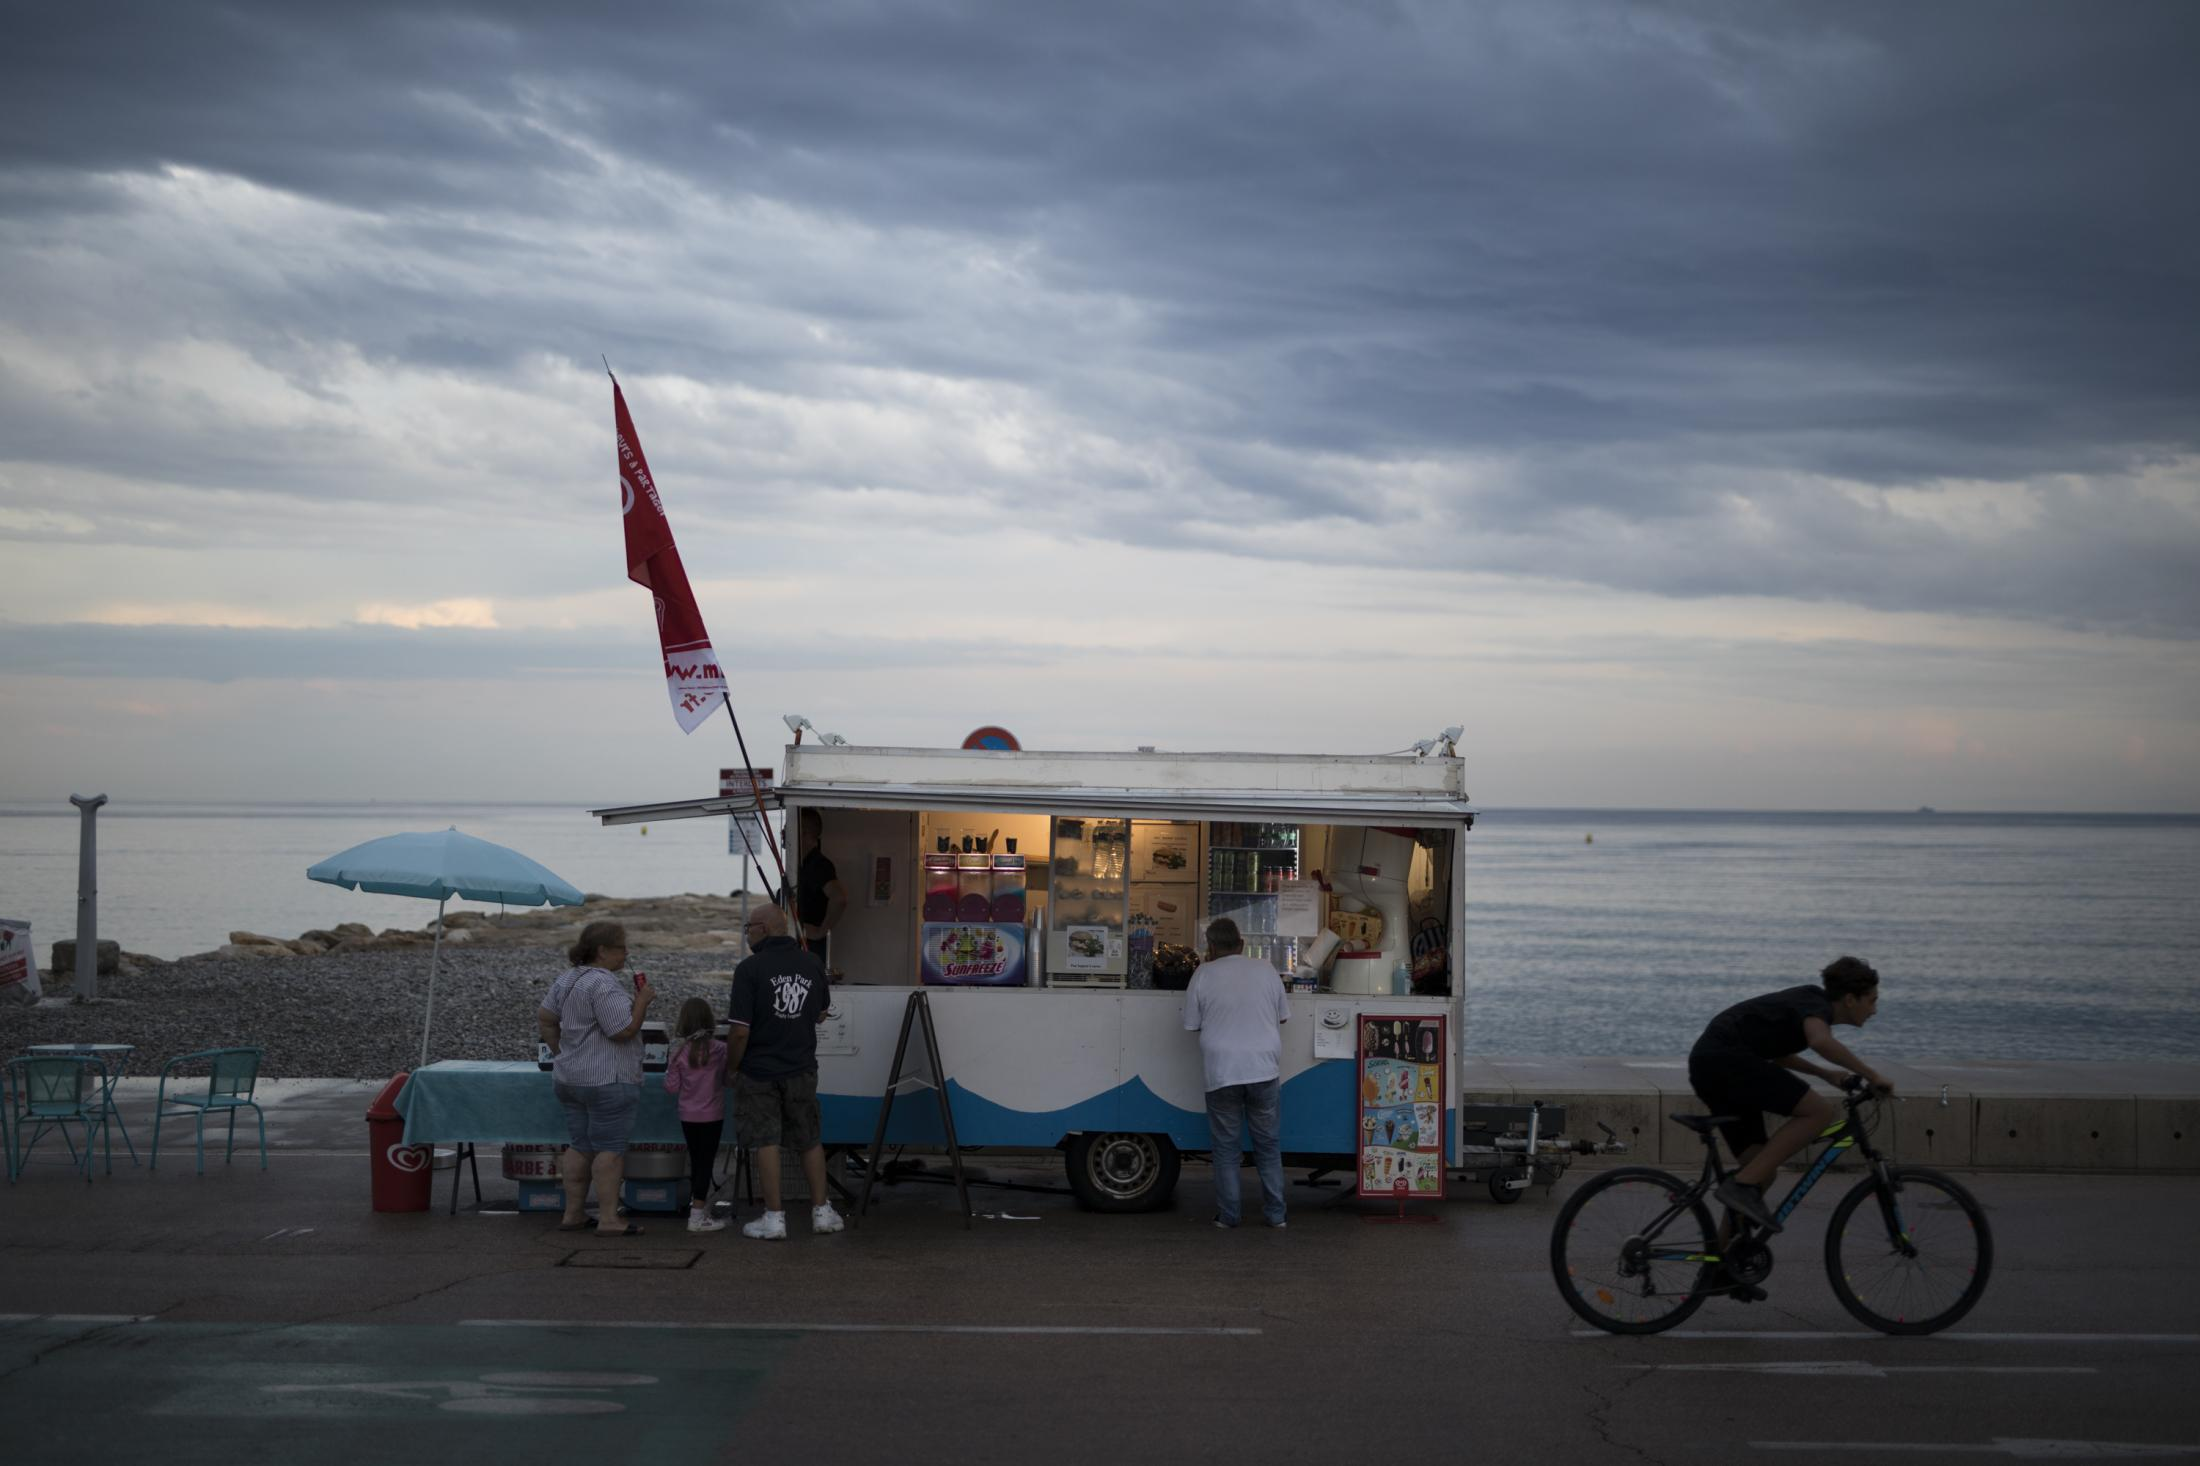 People enjoy refreshments along the beach promenade in Cagnes-sur-Mer the day of the first stage of the 107th Tour de France cycling race, Friday, Aug 29, 2020. (AP Photo/Daniel Cole)